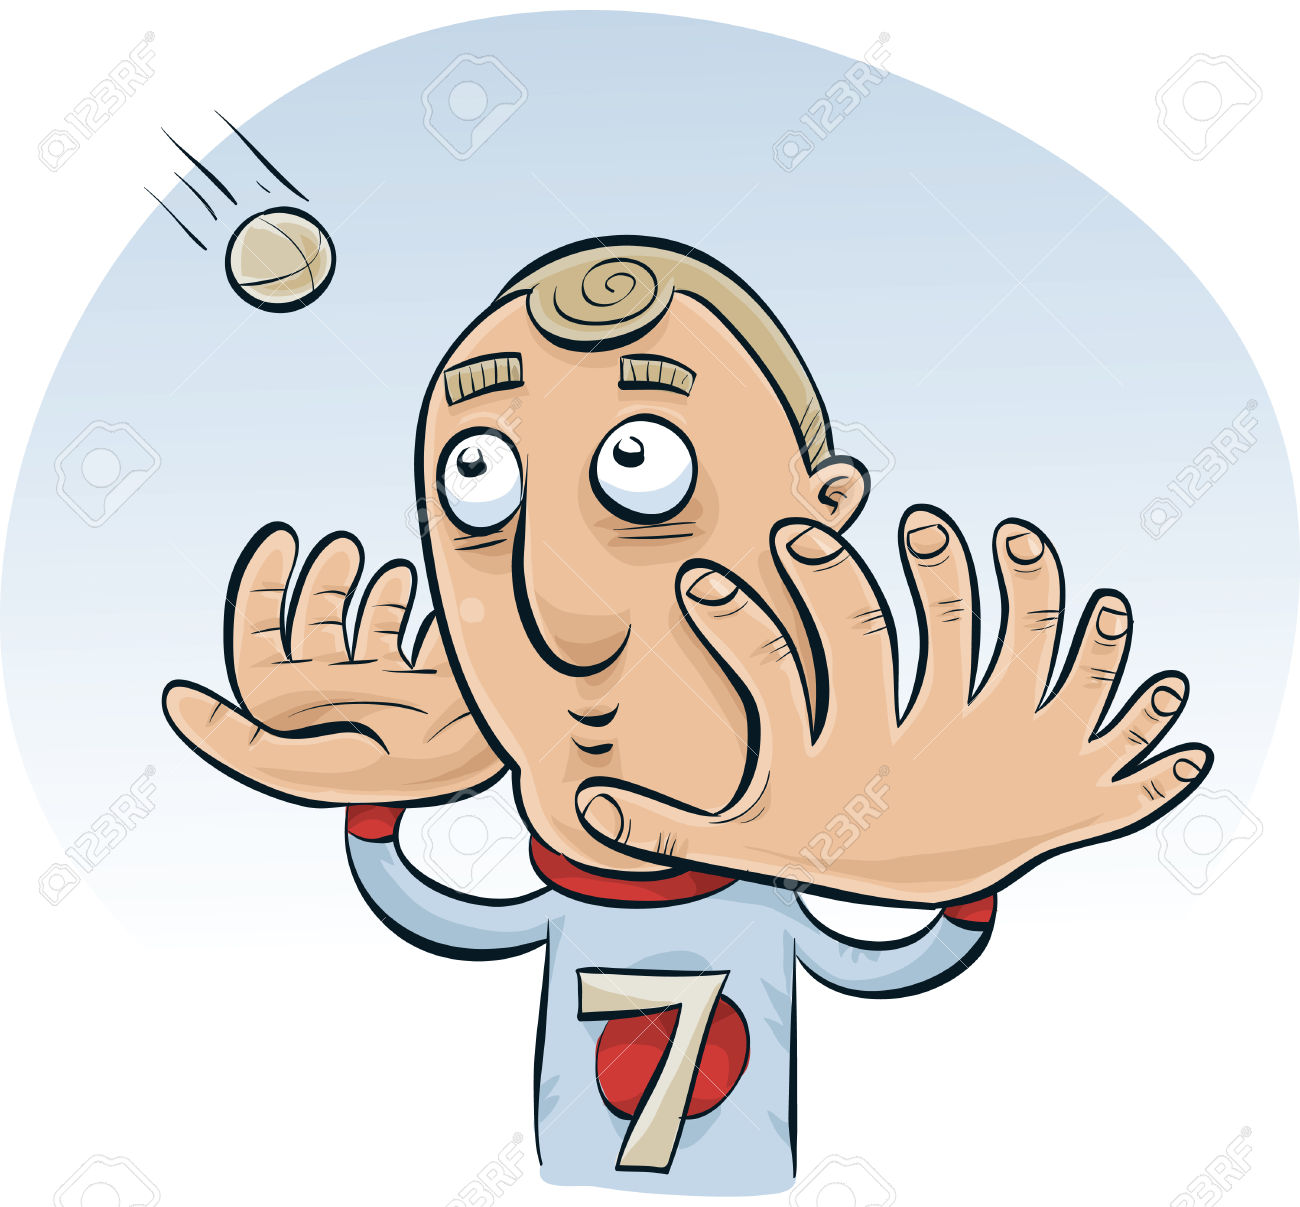 Man with big hand clipart graphic black and white A Cartoon Man With Big Hands With Many Fingers Trying To Catch ... graphic black and white